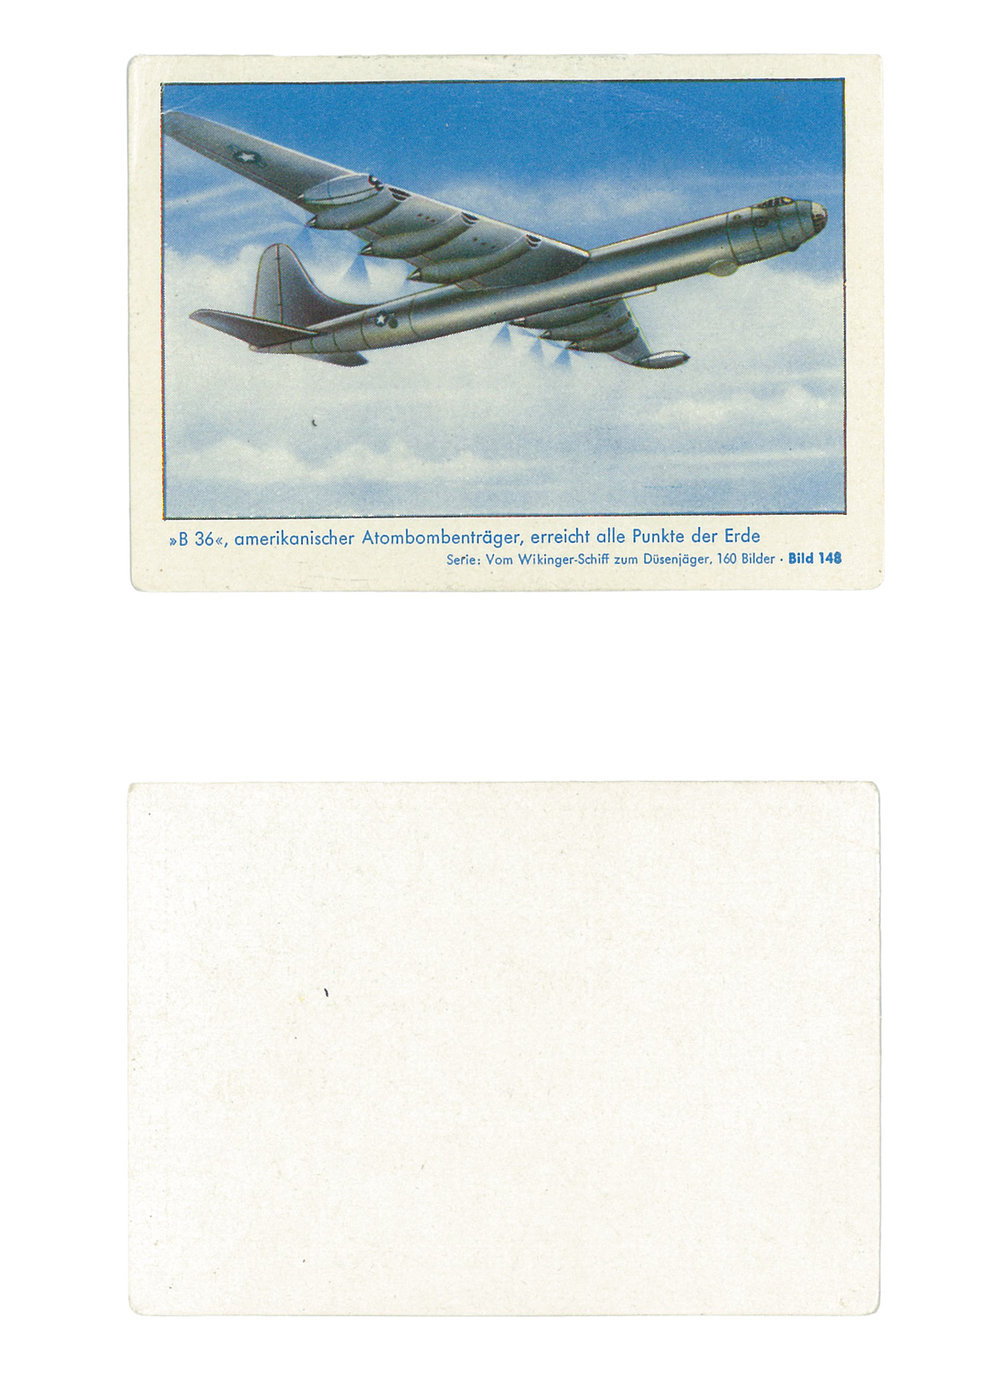 "B-36 American Atomic Bomber  #148 Series: from Viking ships to Jet Fighters Manufacture: Oldenkott Card Dimensions: 2.81"" x 1.94"" Germany - 1953"